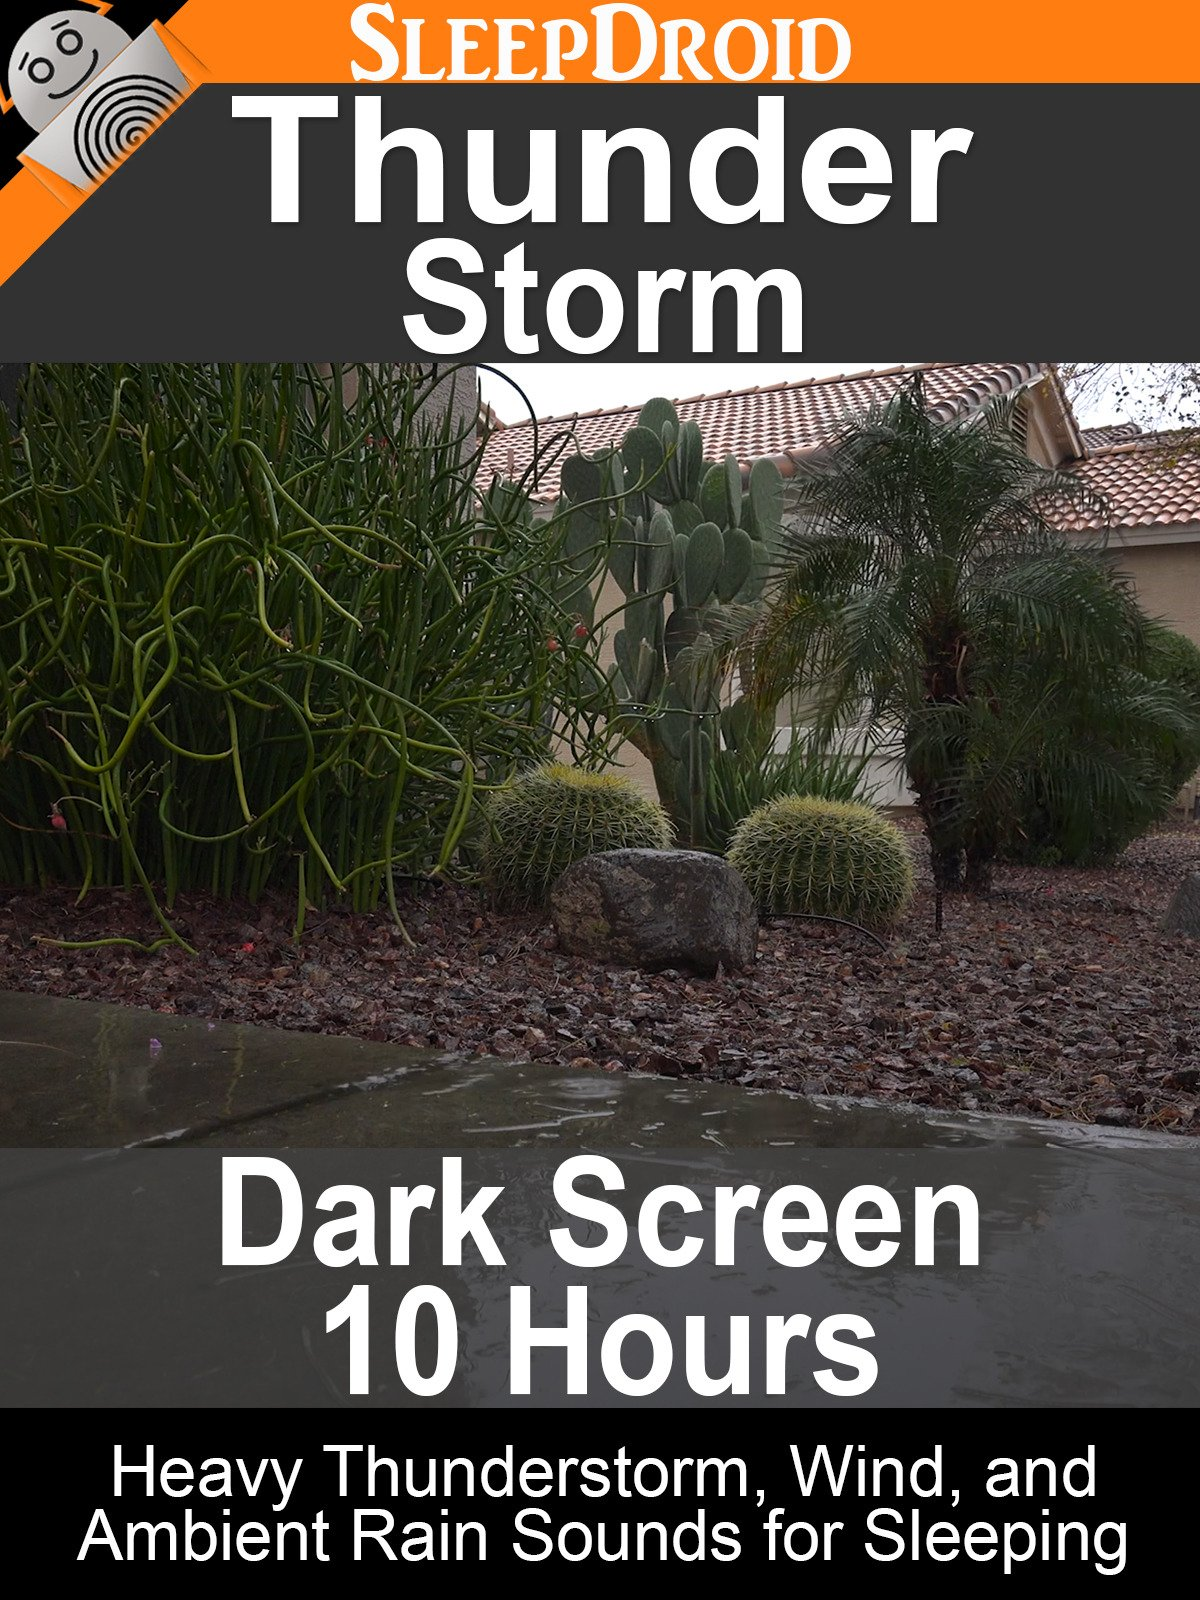 Thunder Storm: Dark Screen 10 Hours Heavy Thunderstorm, Wind, and Ambient Rain Sounds for Sleeping on Amazon Prime Instant Video UK